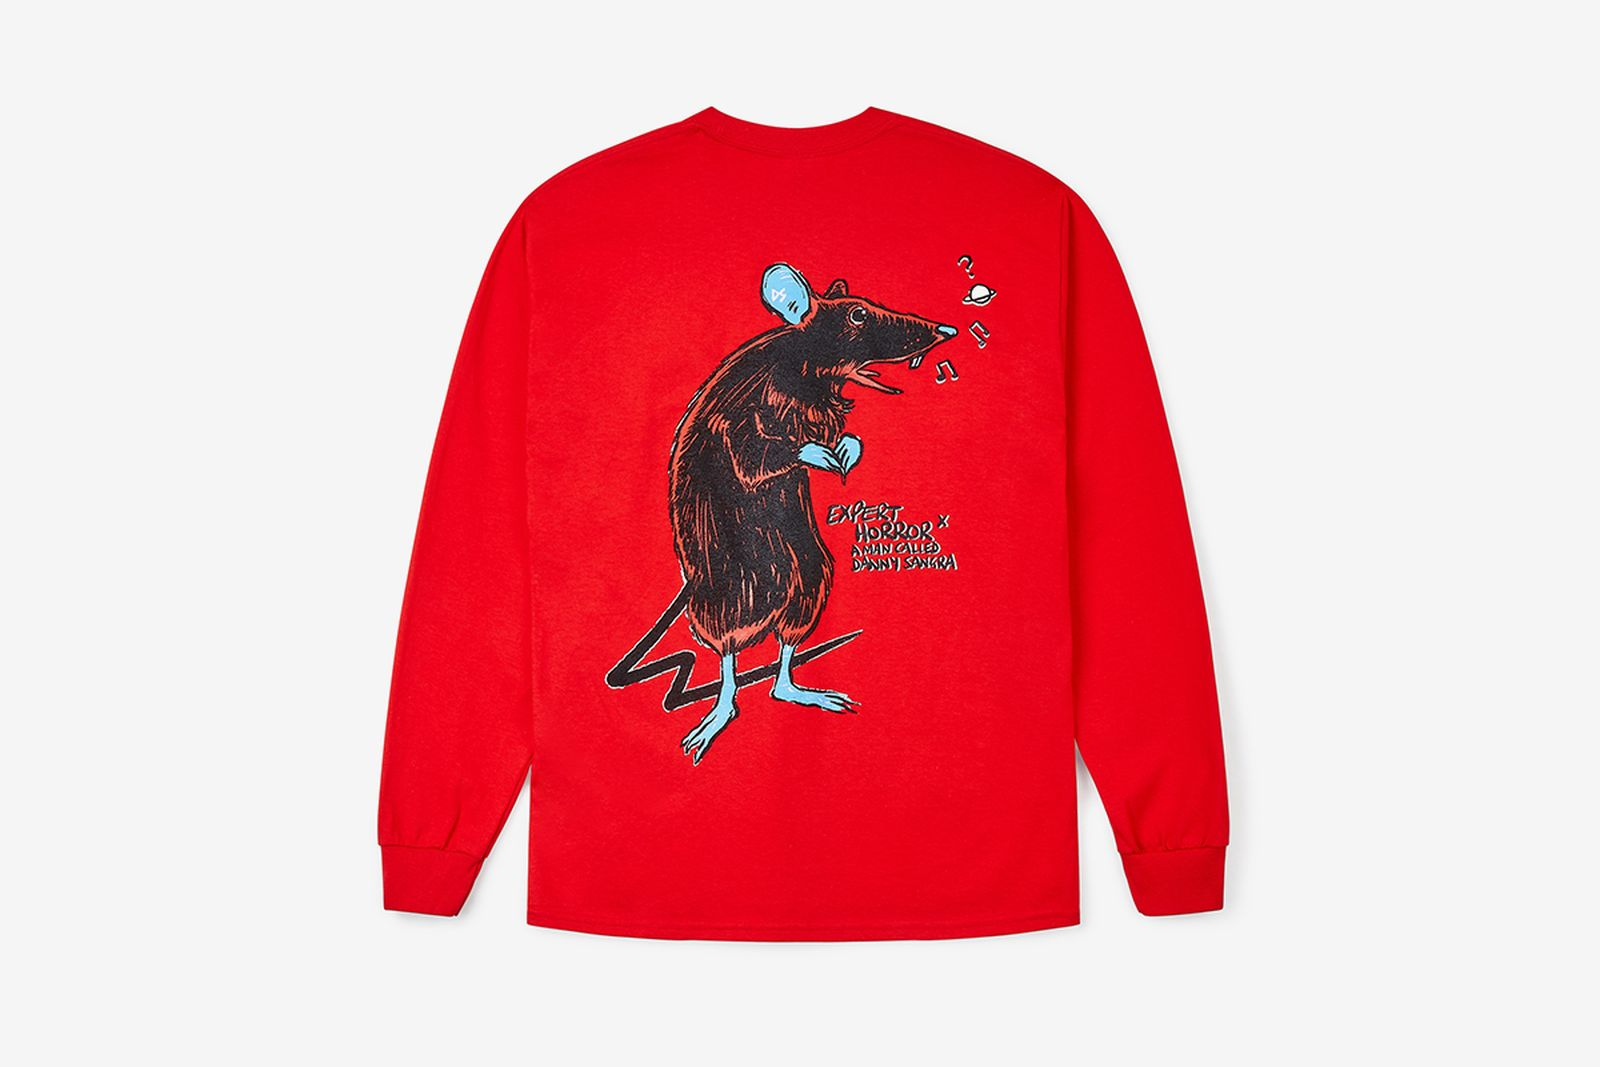 Dover Street Market Year of the Rat Collection